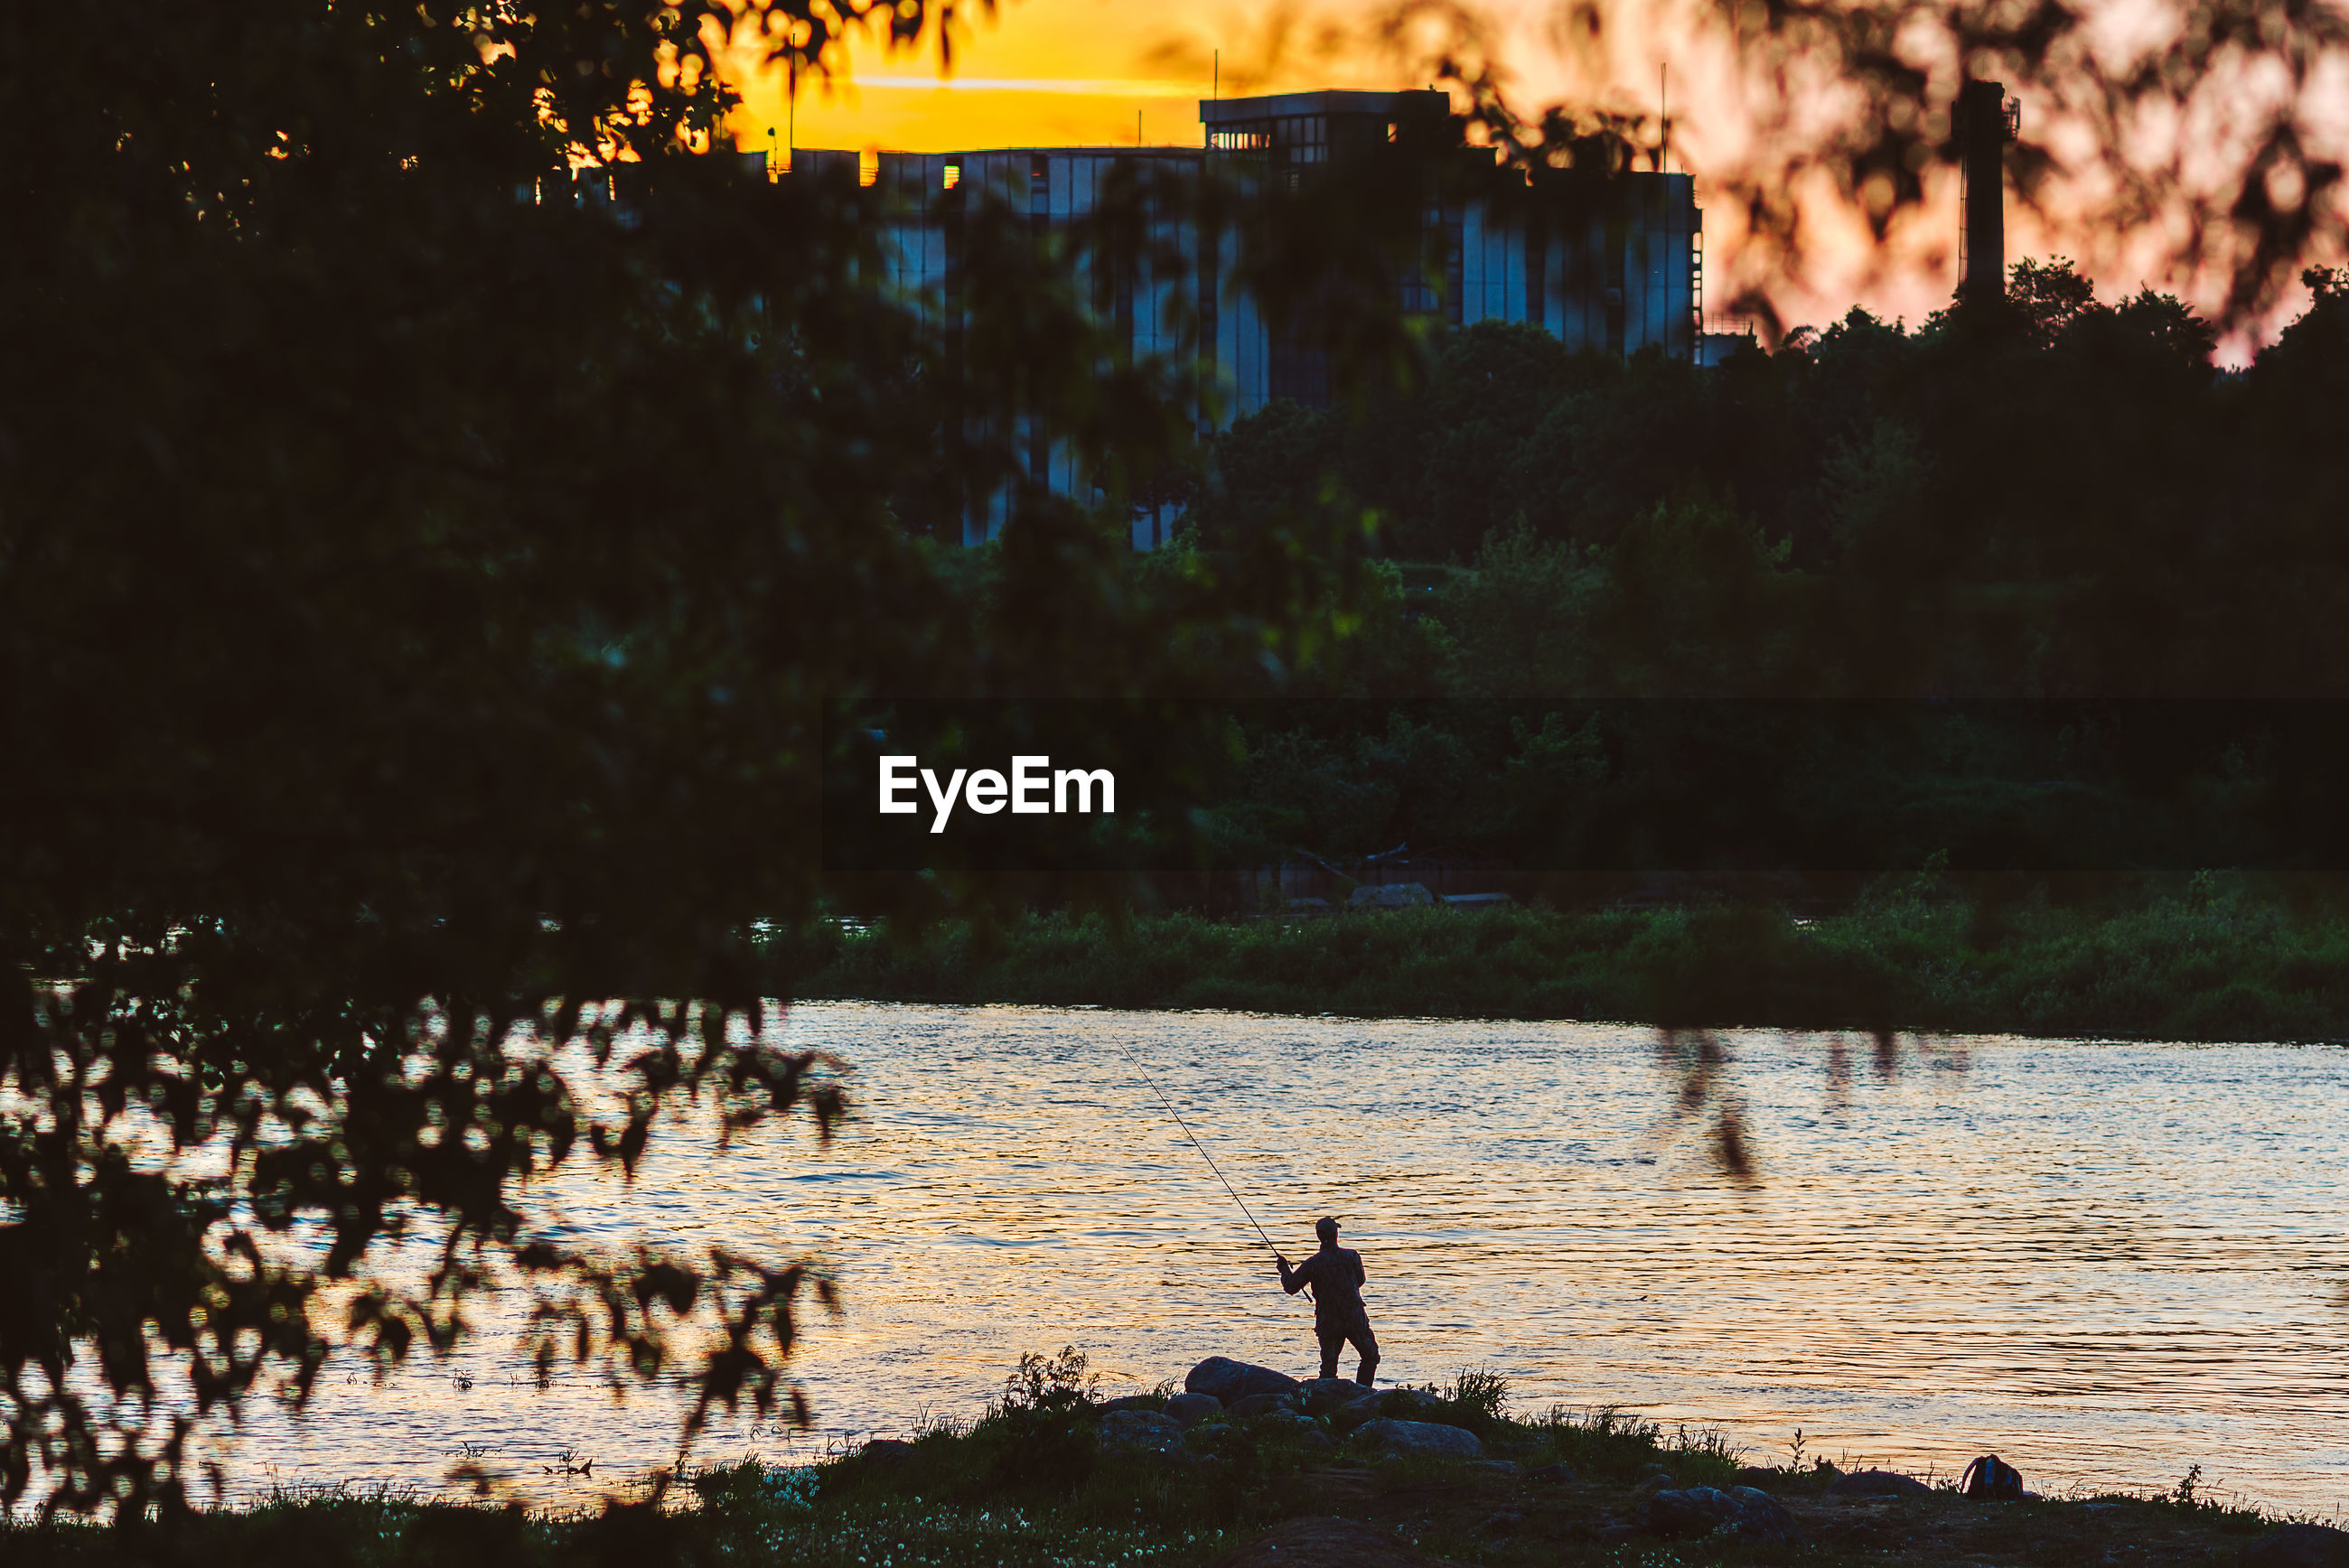 Silhouette man fishing by river during sunset